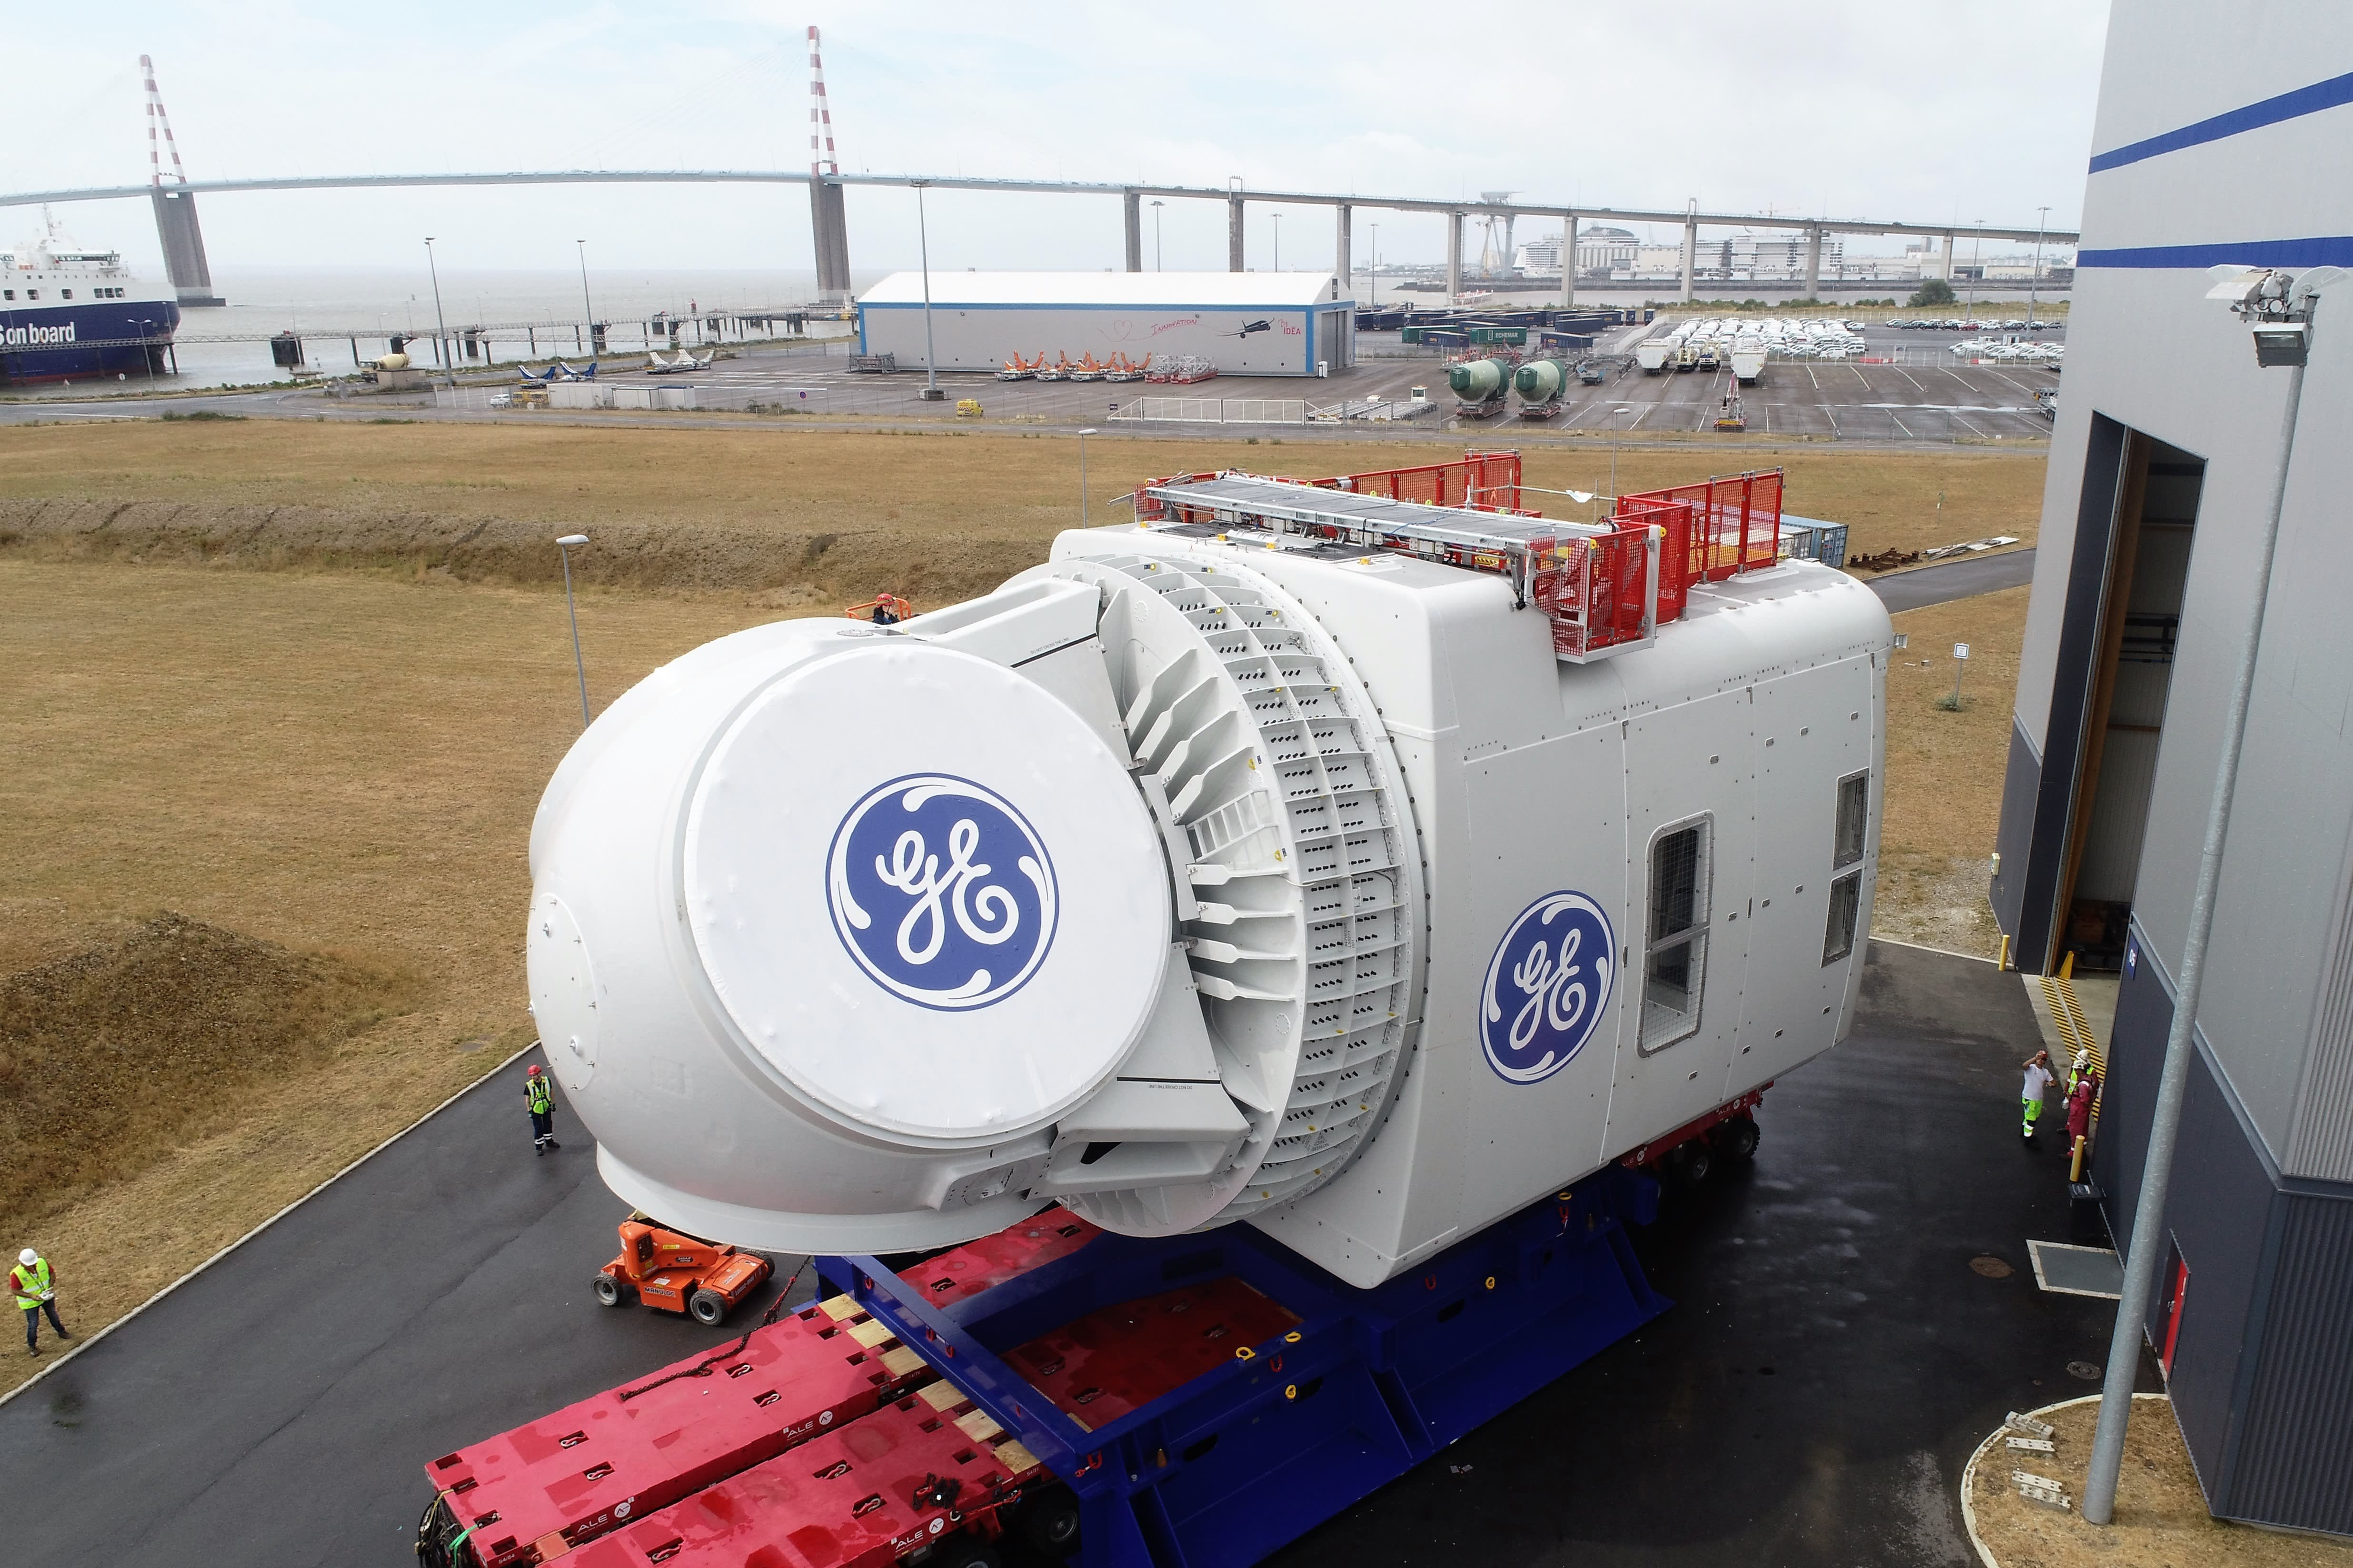 GE reveals new parts for the 'world's largest offshore wind turbine'